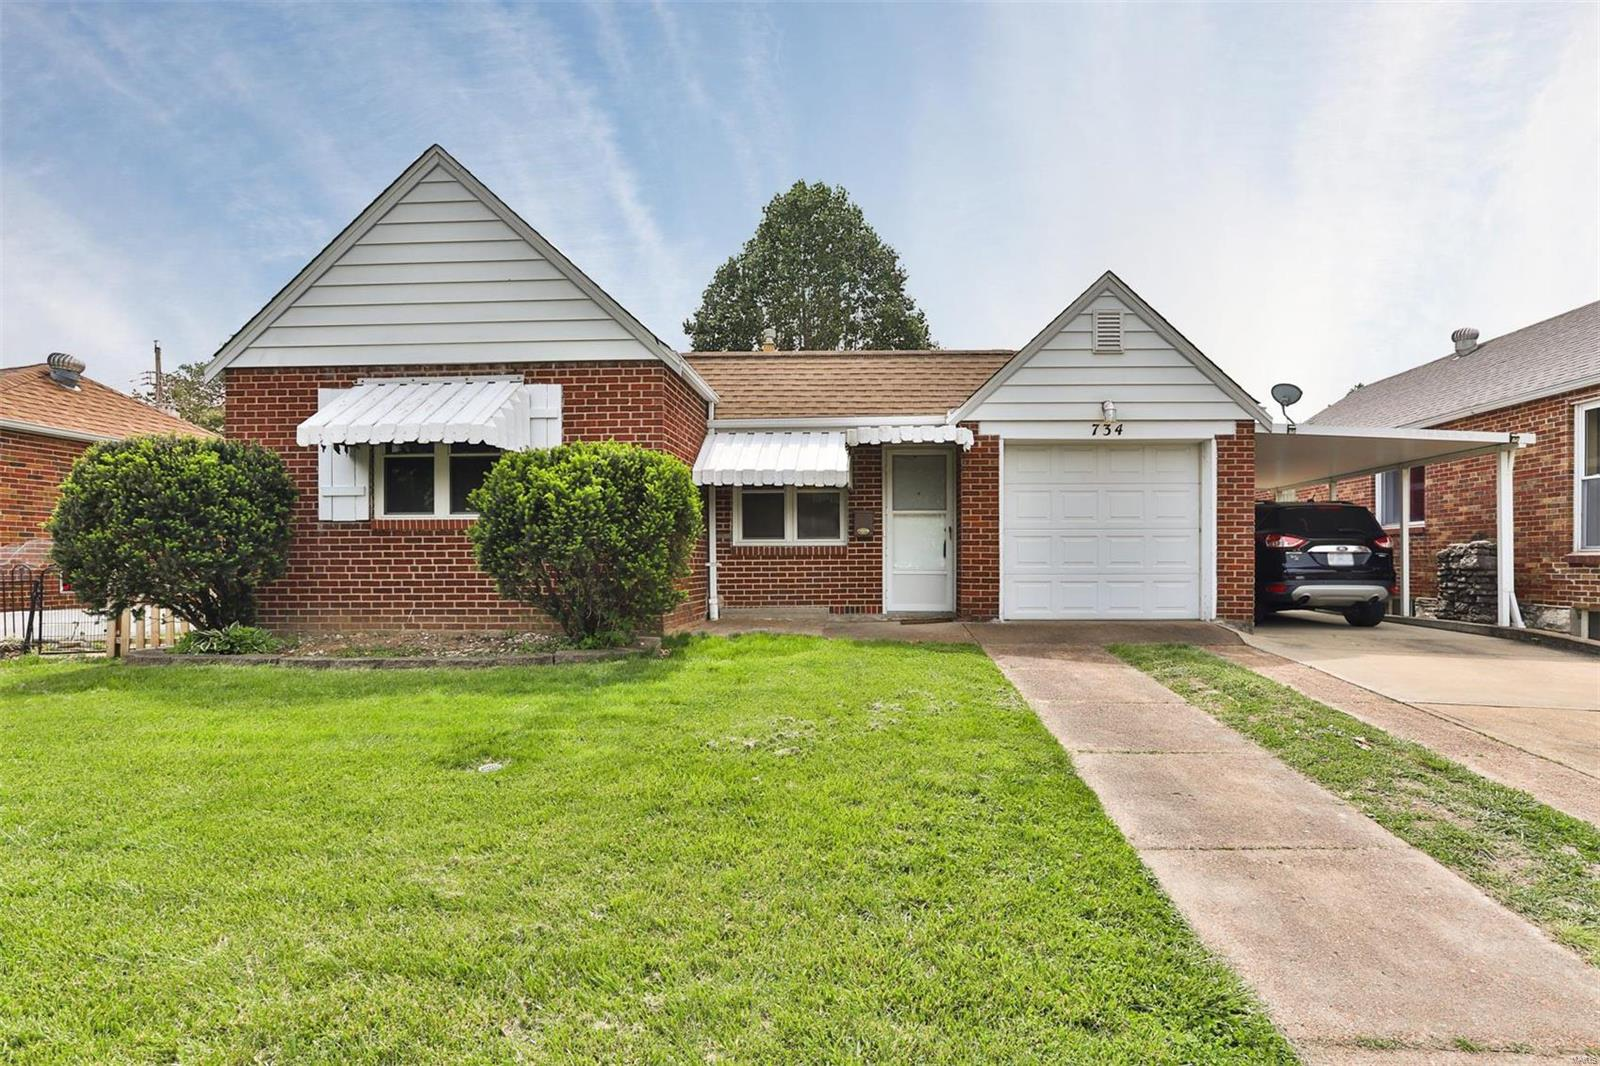 734 Avenue H Property Photo - St Louis, MO real estate listing